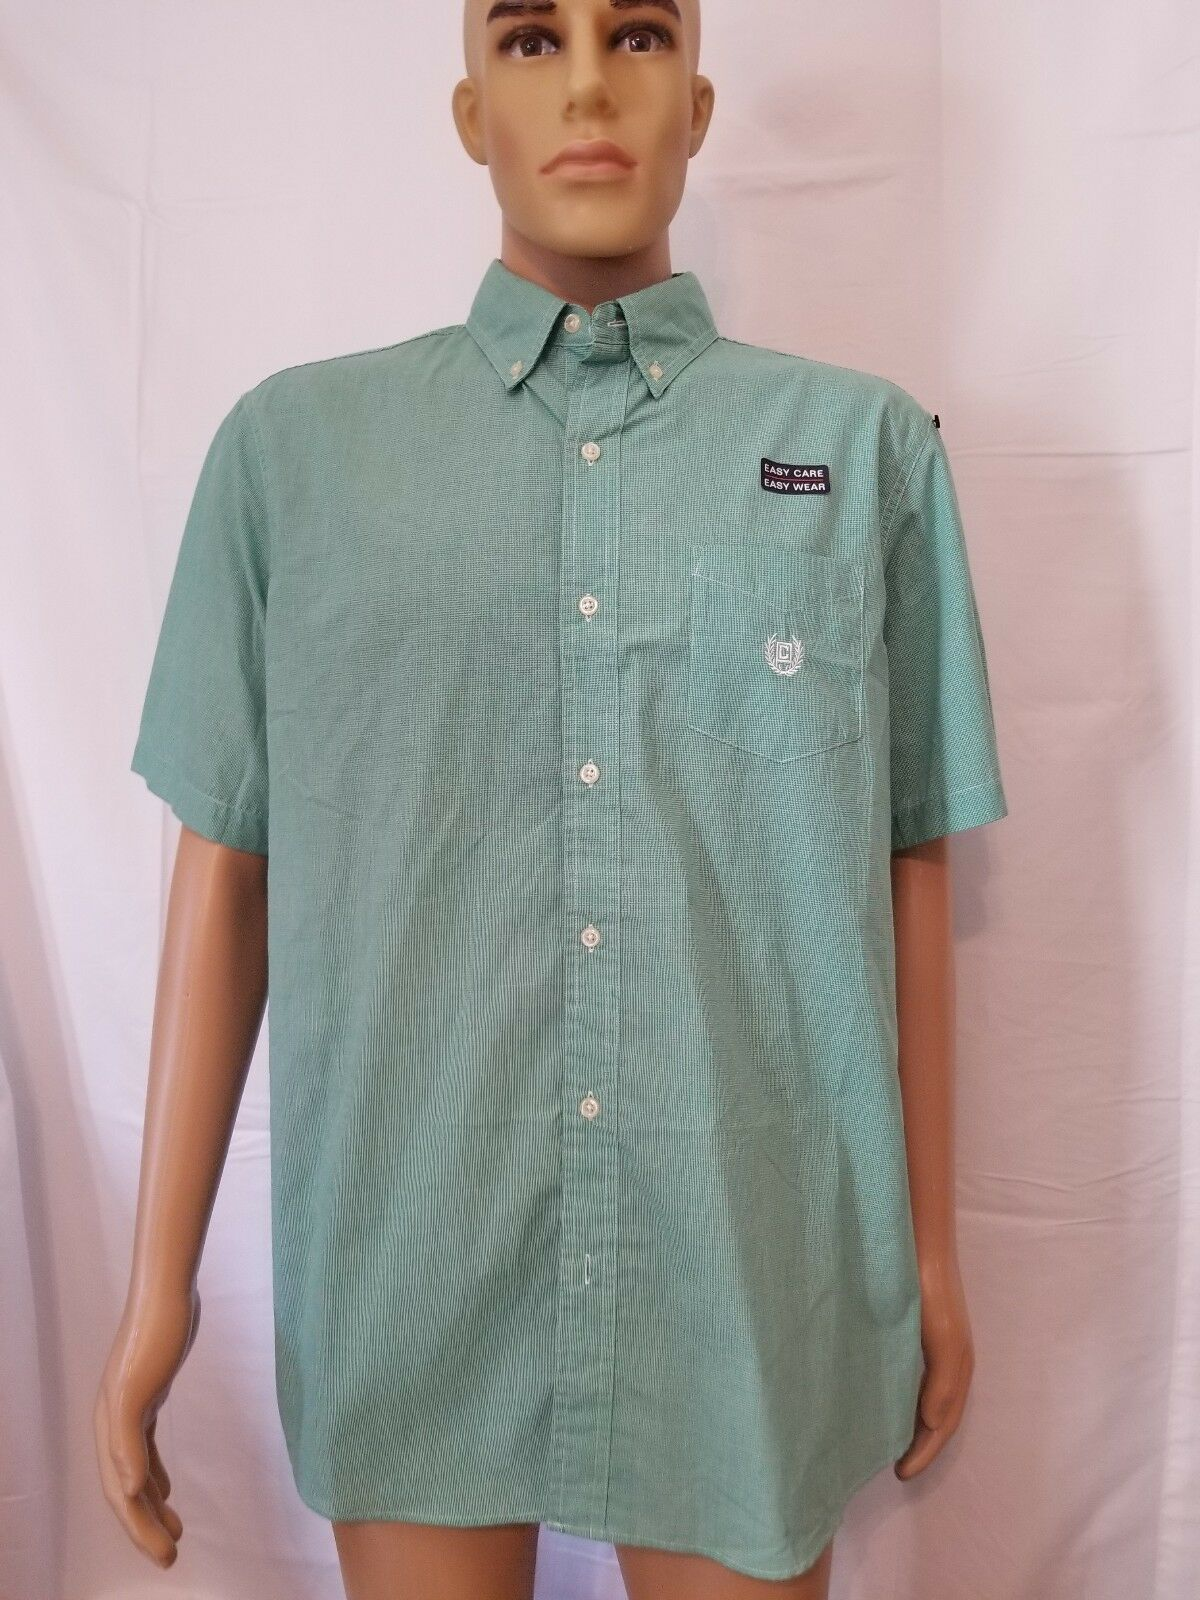 Chaps Button Up Shirt Mens Easy Care Easy Wear Green Large NWT NEW Short Sleeve